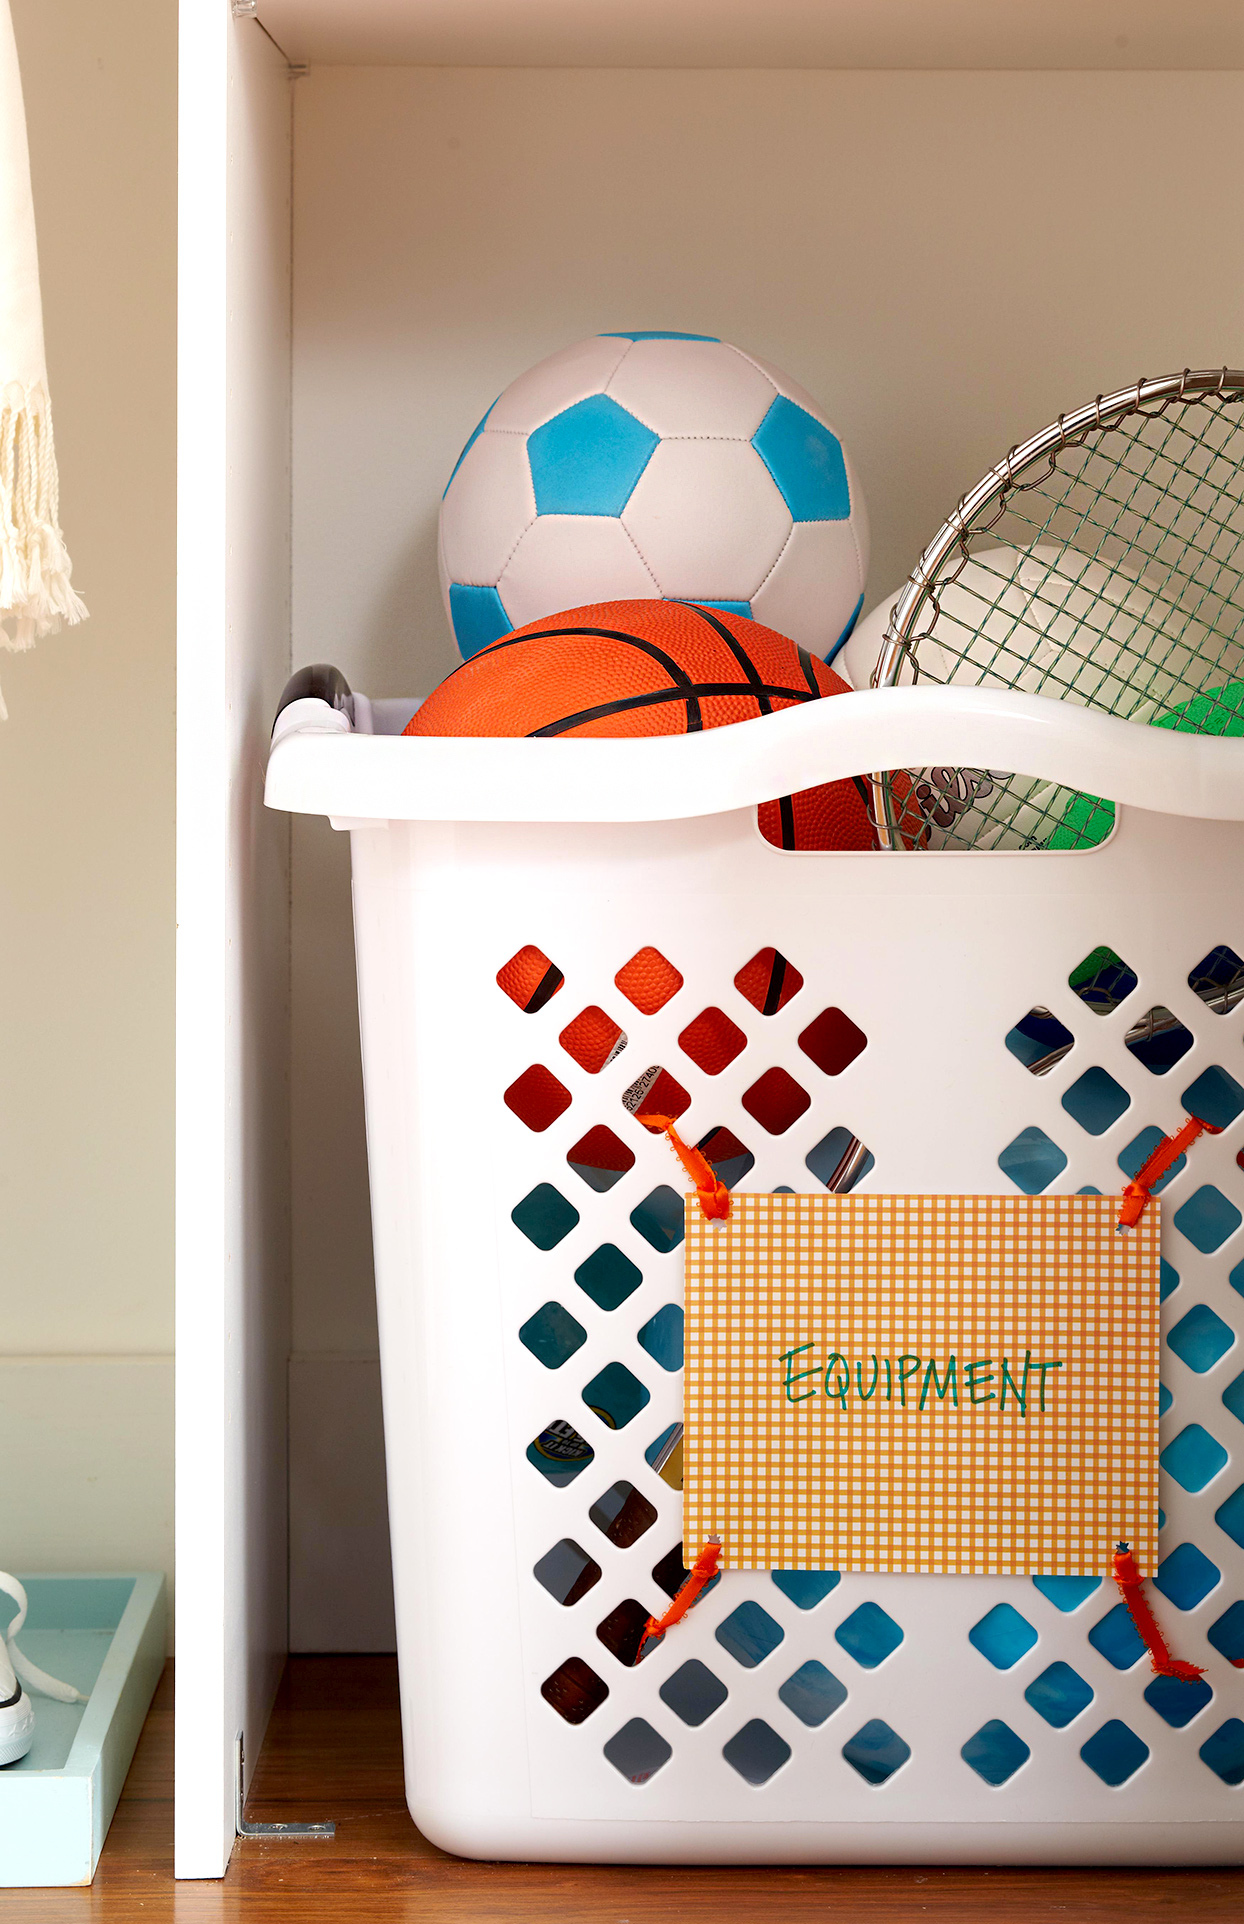 White basket filled with sports equipment